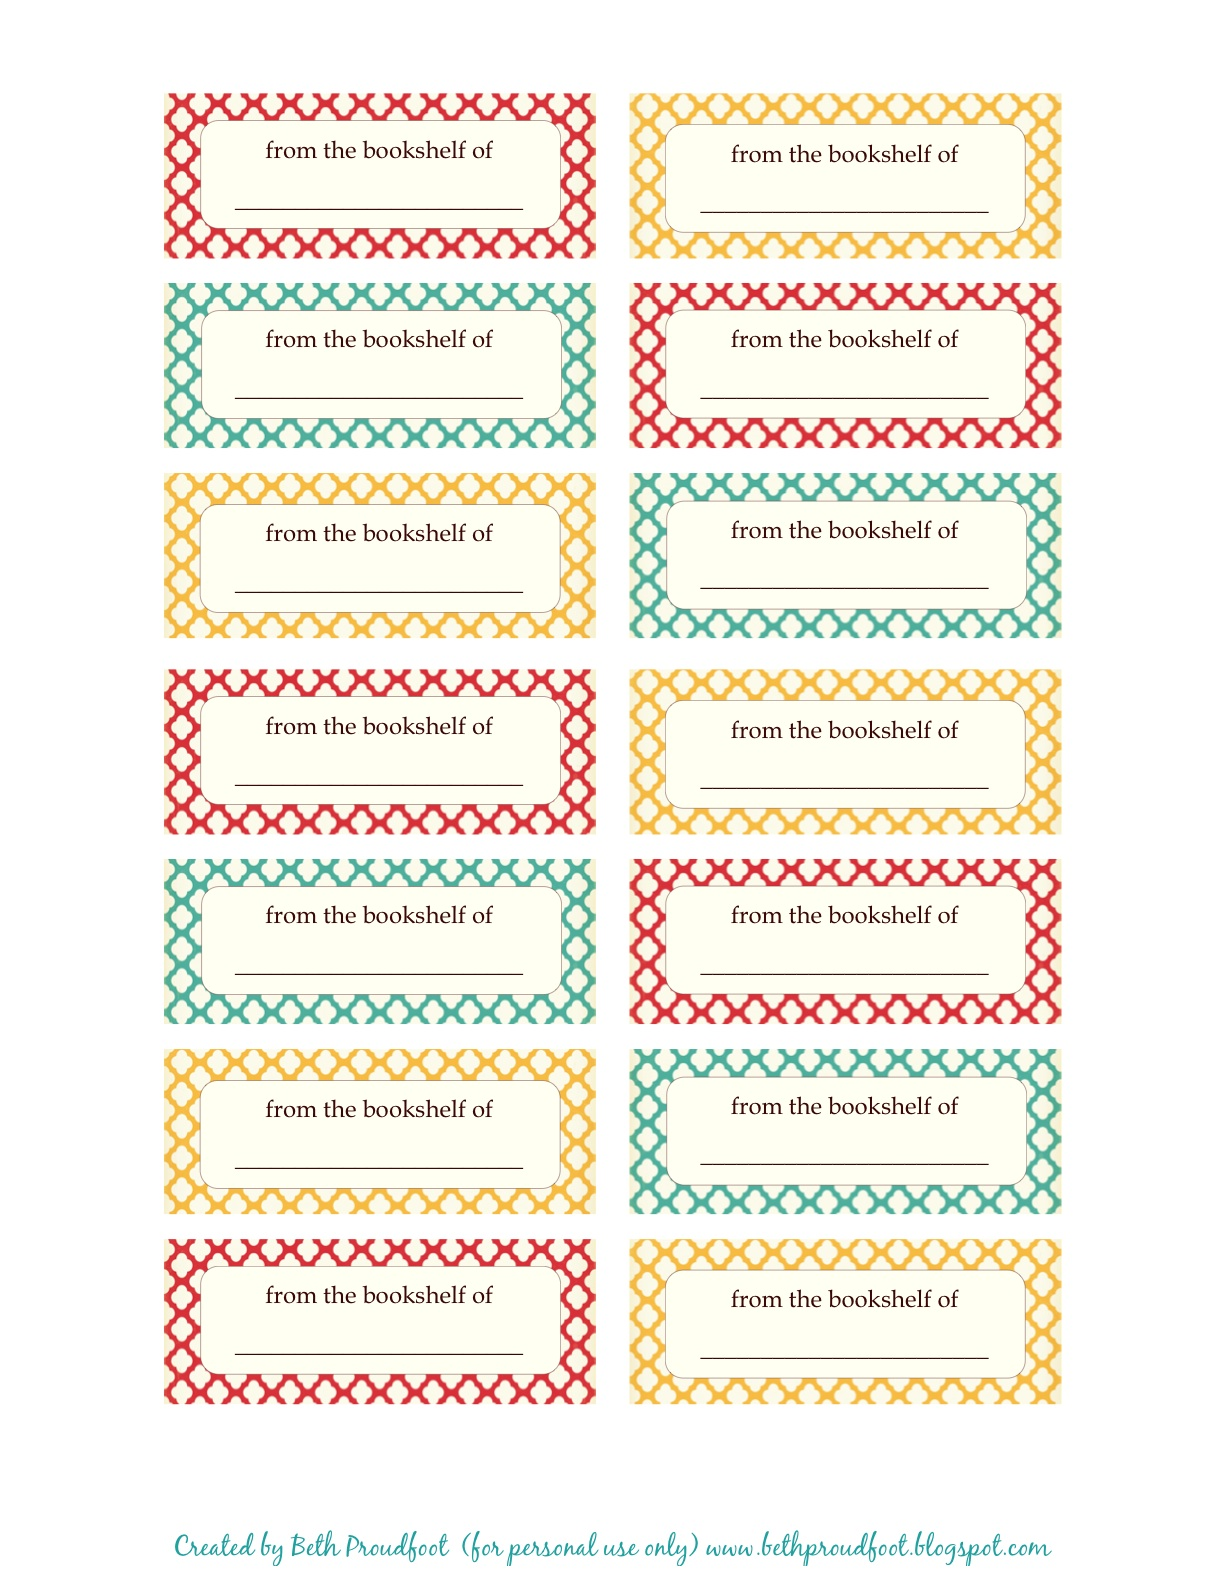 6 Images of School Book Labels Printable